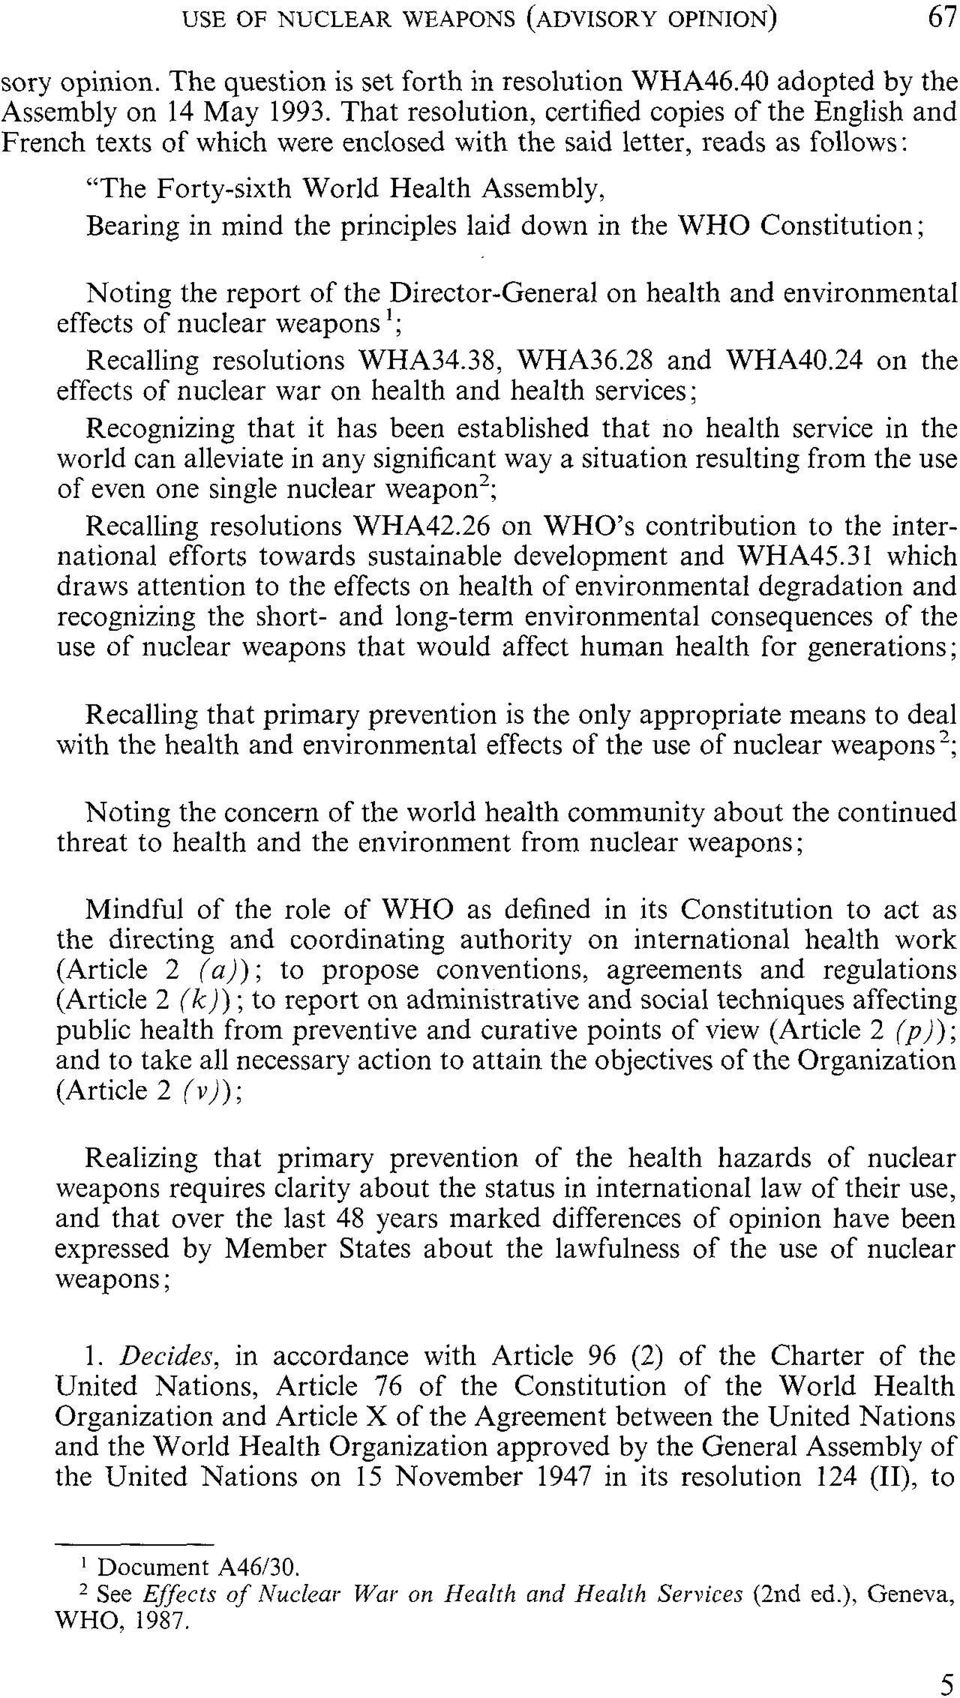 laid down in the WHO Constitution; Noting the report of the Director-General on health and environmental effects of nuclear weapons '; Recalling resolutions WHA34.38, WHA36.28 and WHA40.